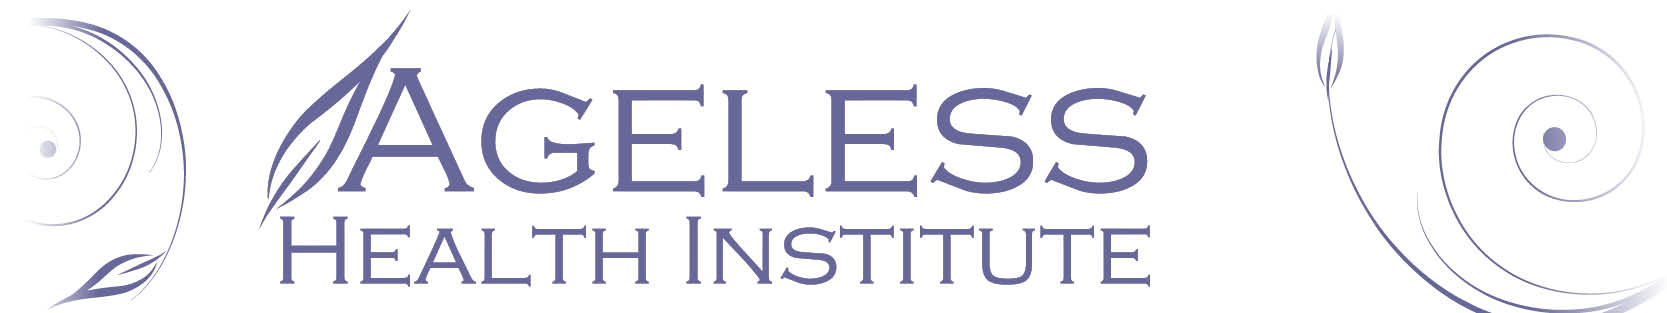 Ageless Health Institute Logo.jpg